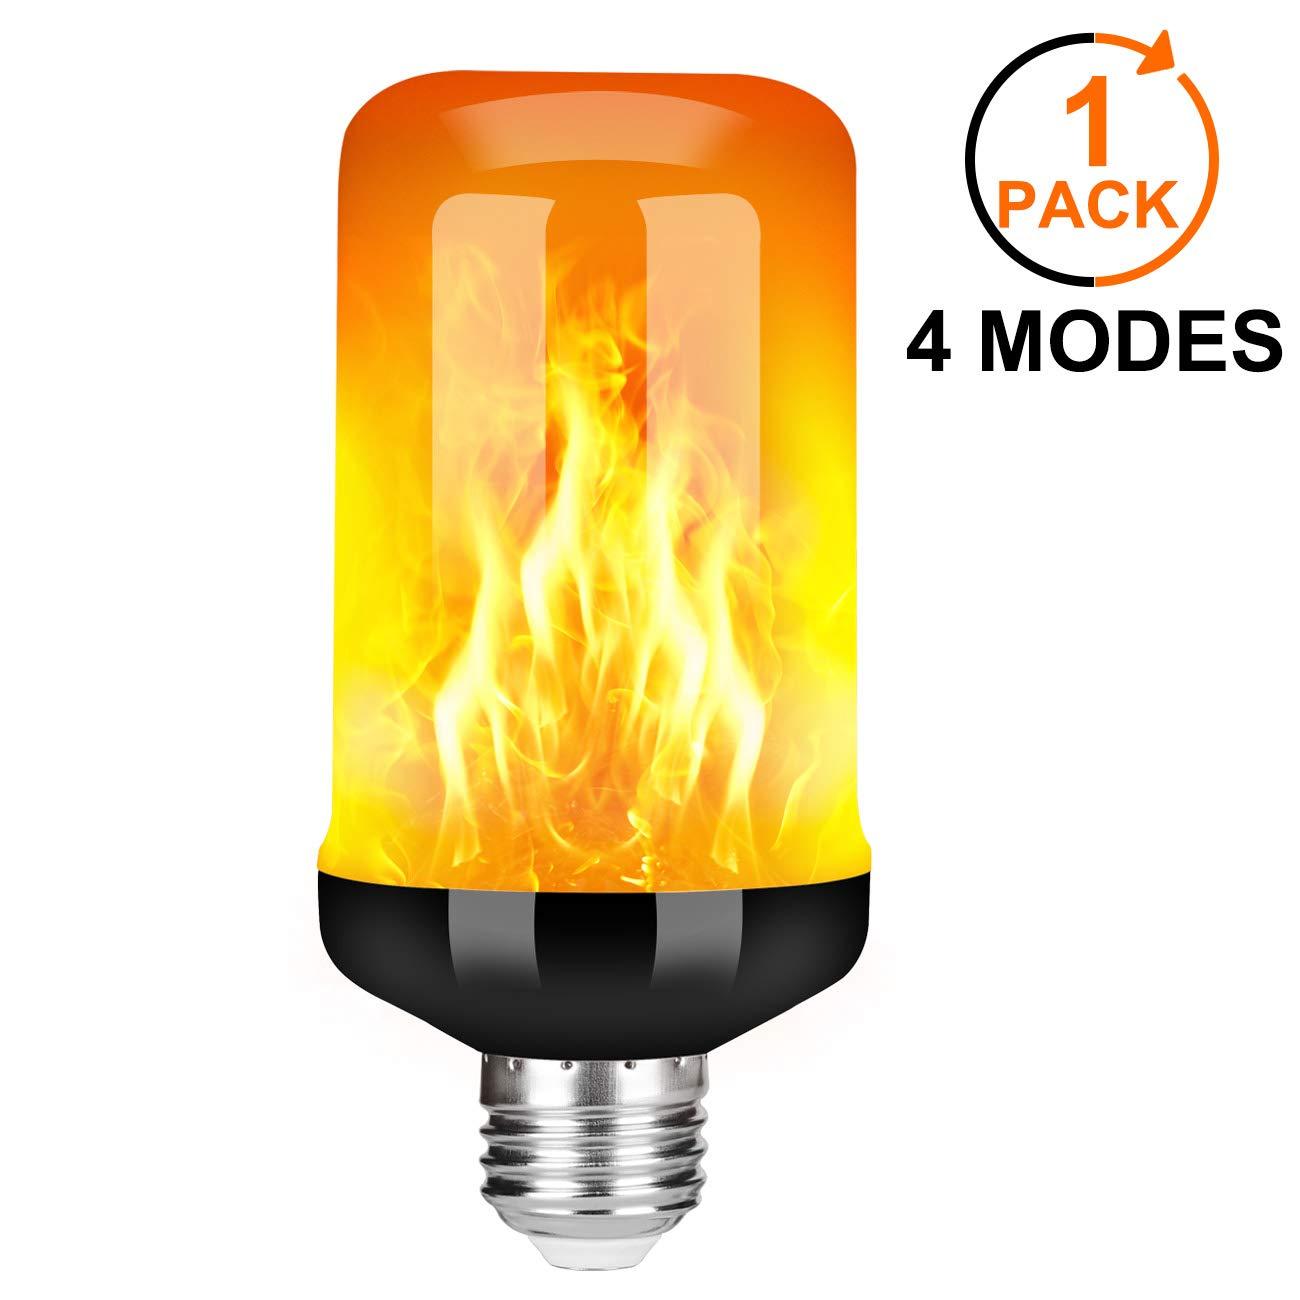 Y- STOP LED Flame Effect Fire Light Bulb - Upgraded 4 Modes Flickering Fire Christmas Decorations Lights - E26 Base Flame Bulb with Upside Down Effect (Black-1 Pack)